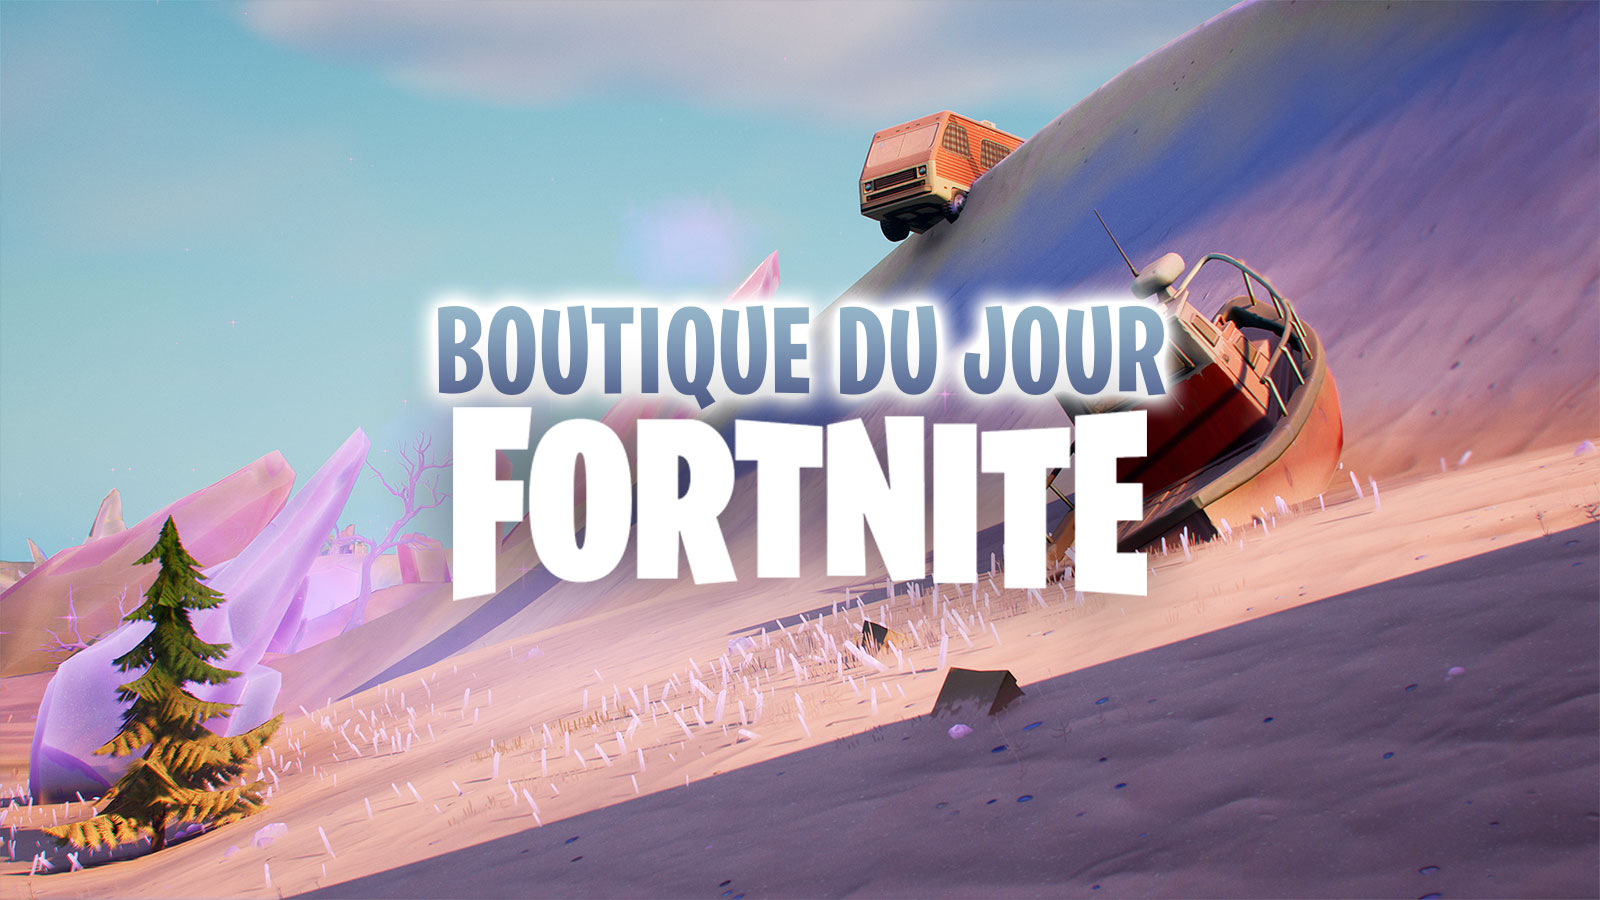 Boutique Fortnite Epic Games